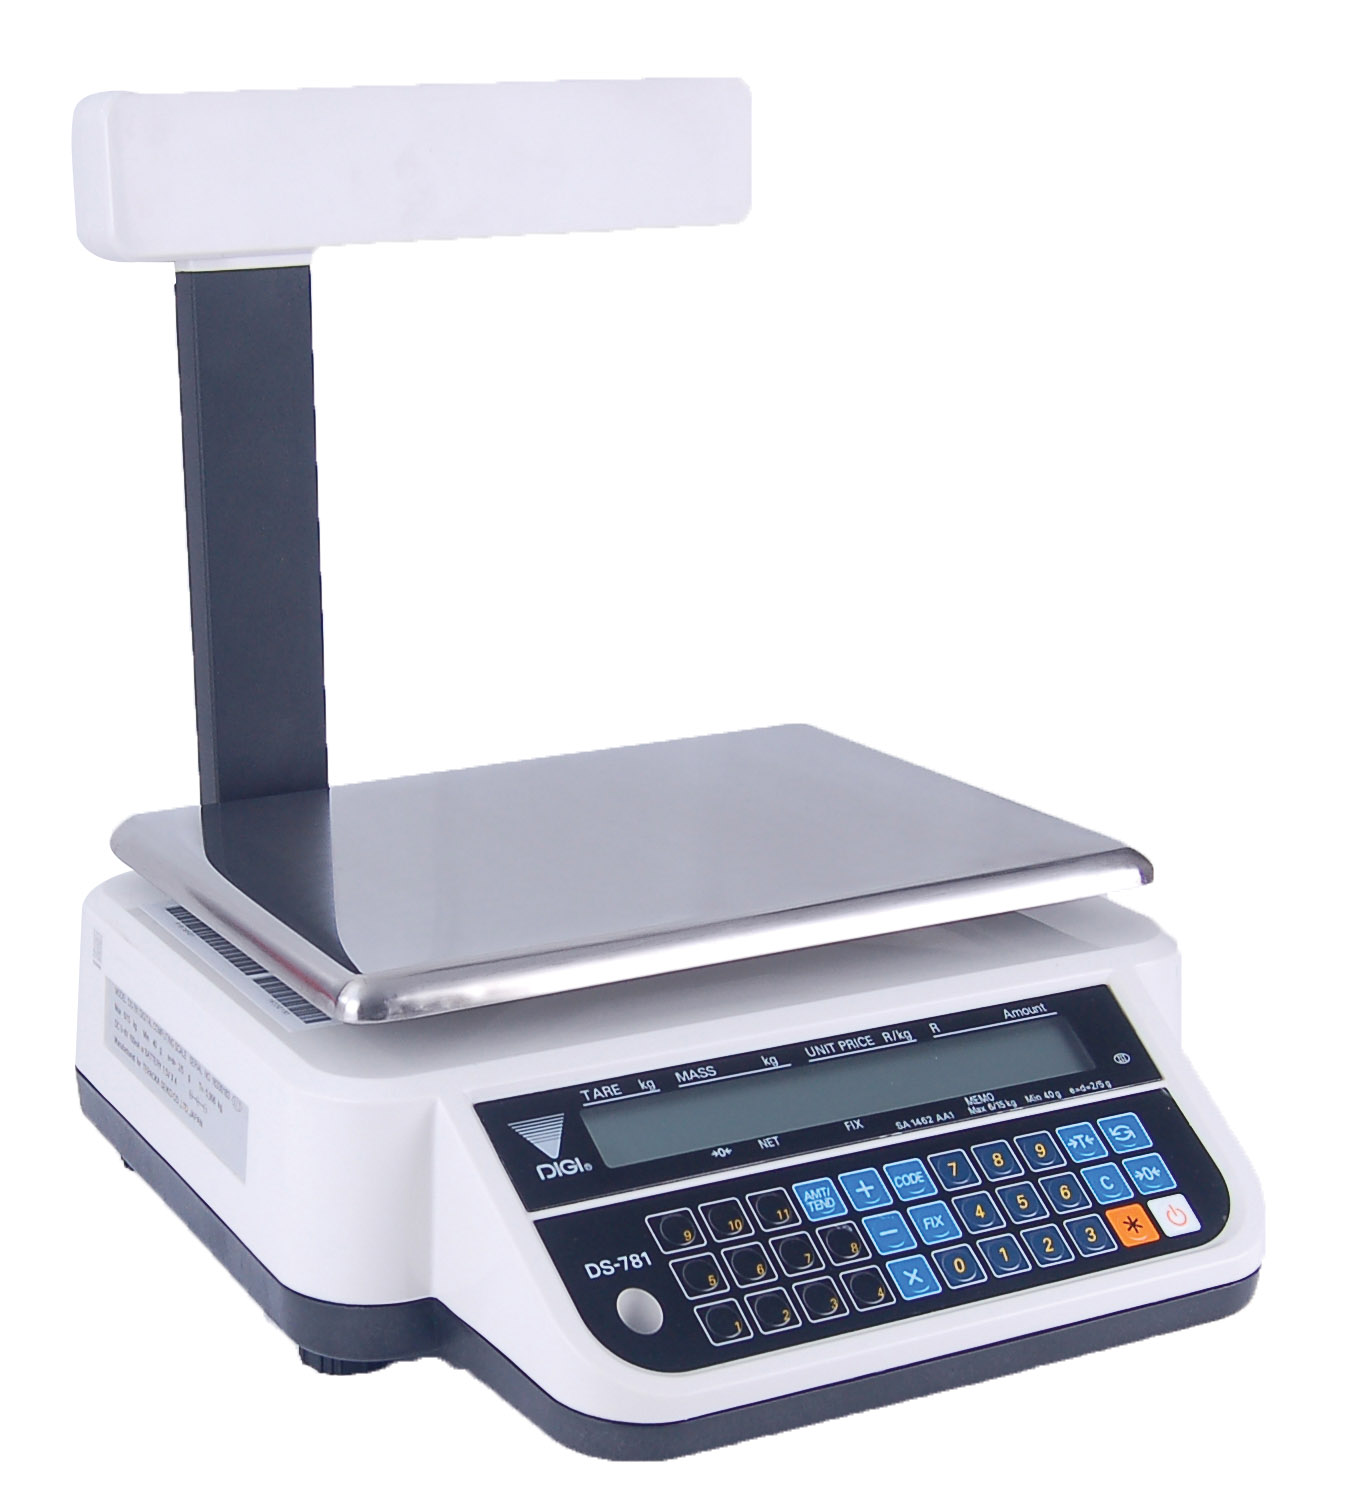 RETAIL SCALE ELECTRONIC - 6/15KG (2/5GR) INCL POLE